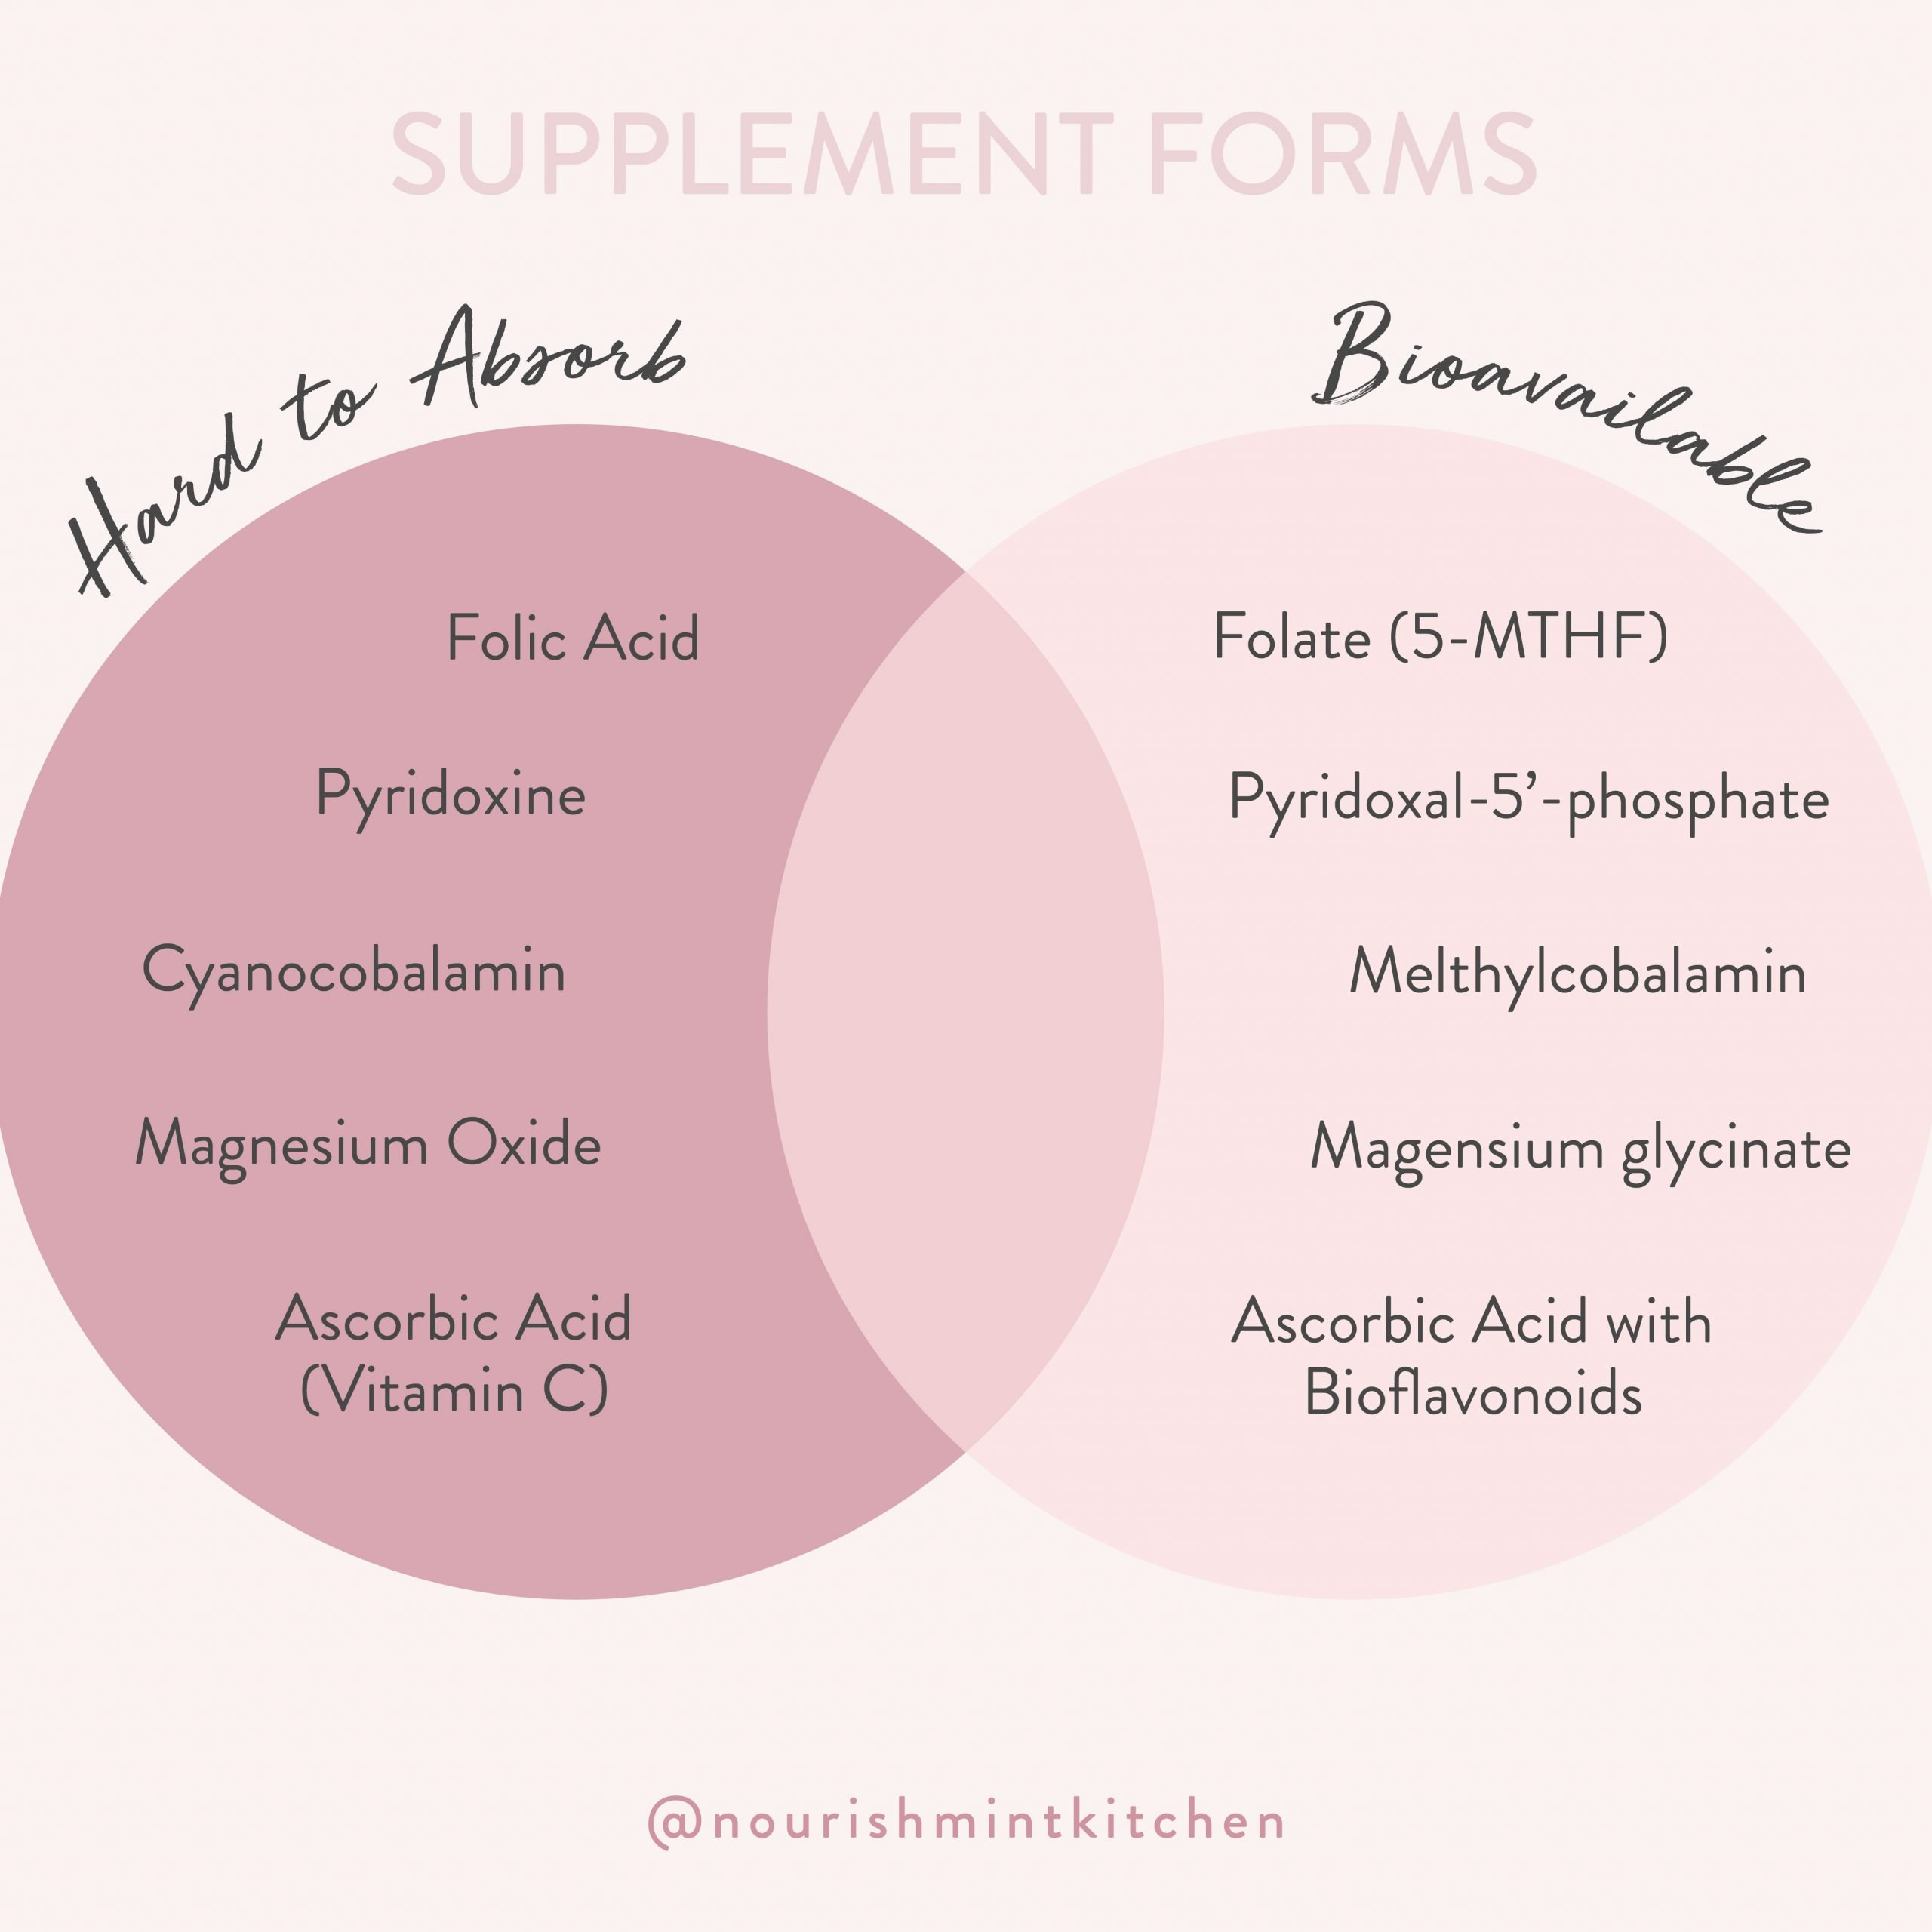 Graphic with text: supplement forms. Hard to absorb: folic acid, pyridoxine, cyanocobalamin, magnesium oxide, ascorbic acid. Bioavailable: folate (5-MTHF), pyridocal-5'-phosphate, methylcobalamin, magnesium glycinate, ascorbic acid with bioflavenoids